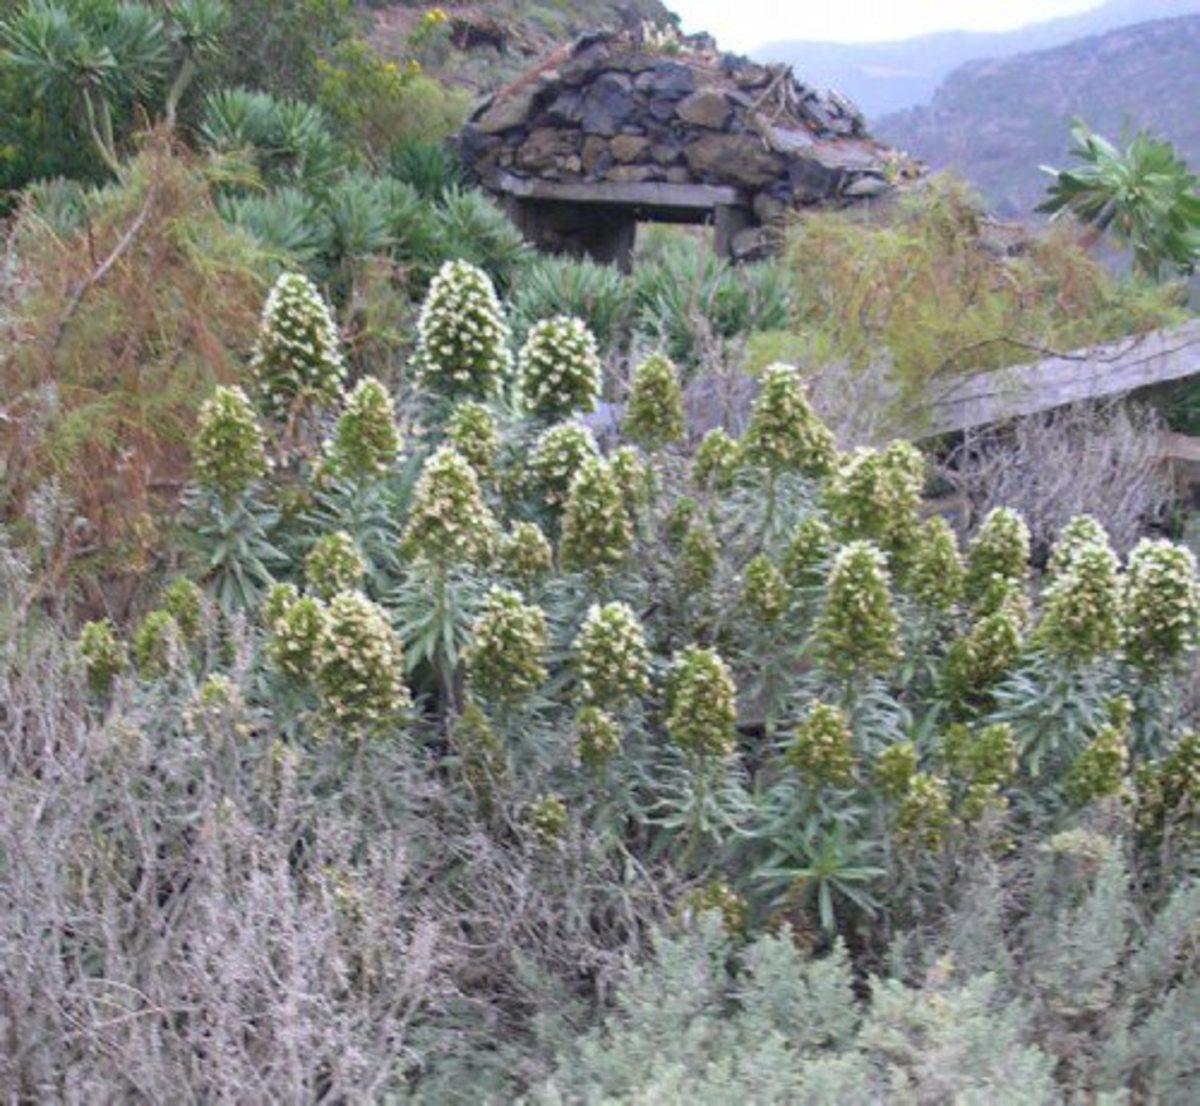 Echium giganteum growing on a cliff